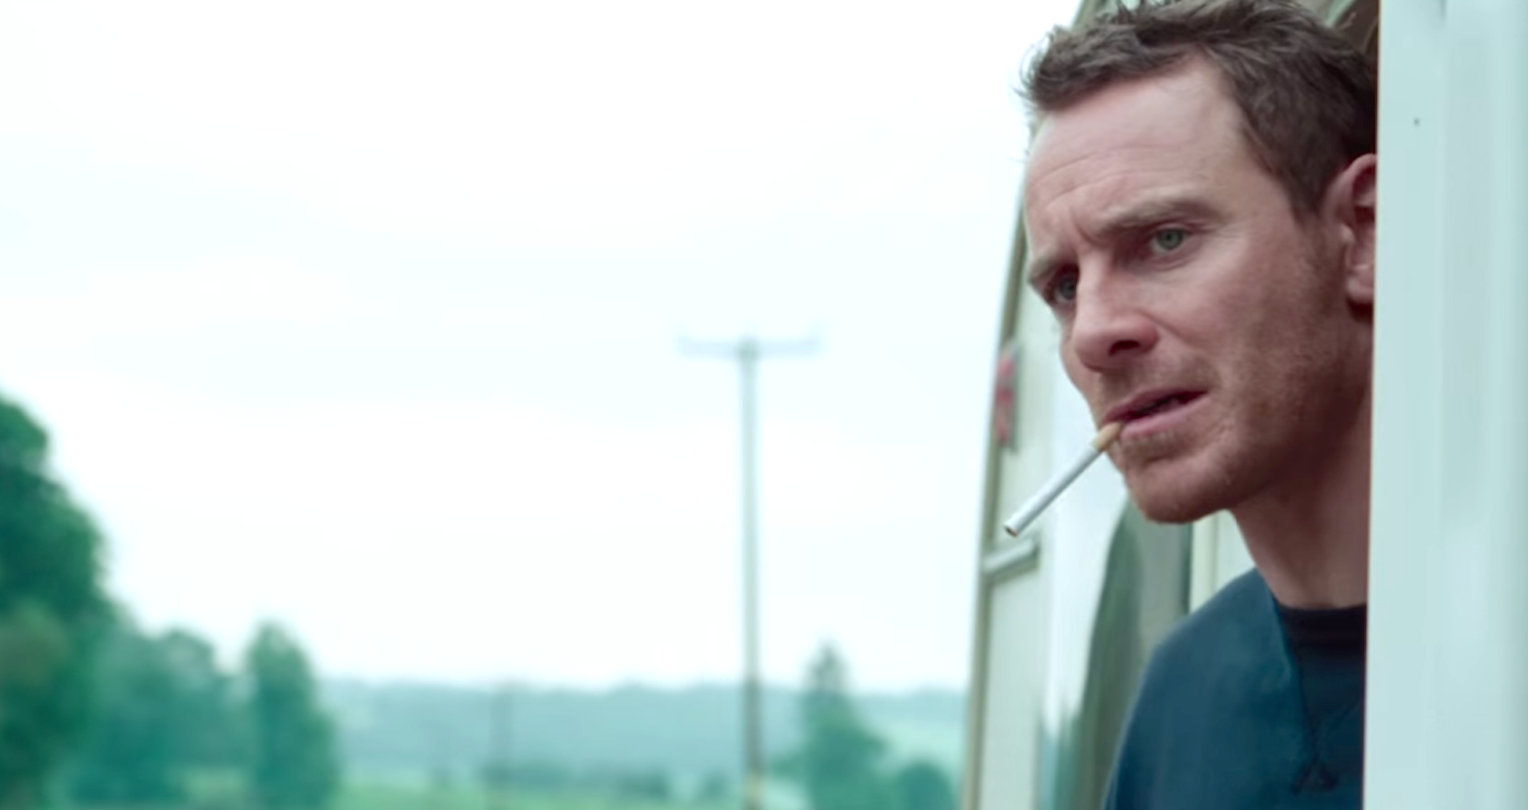 Trespass Against Us (2016), Michael Fassbender